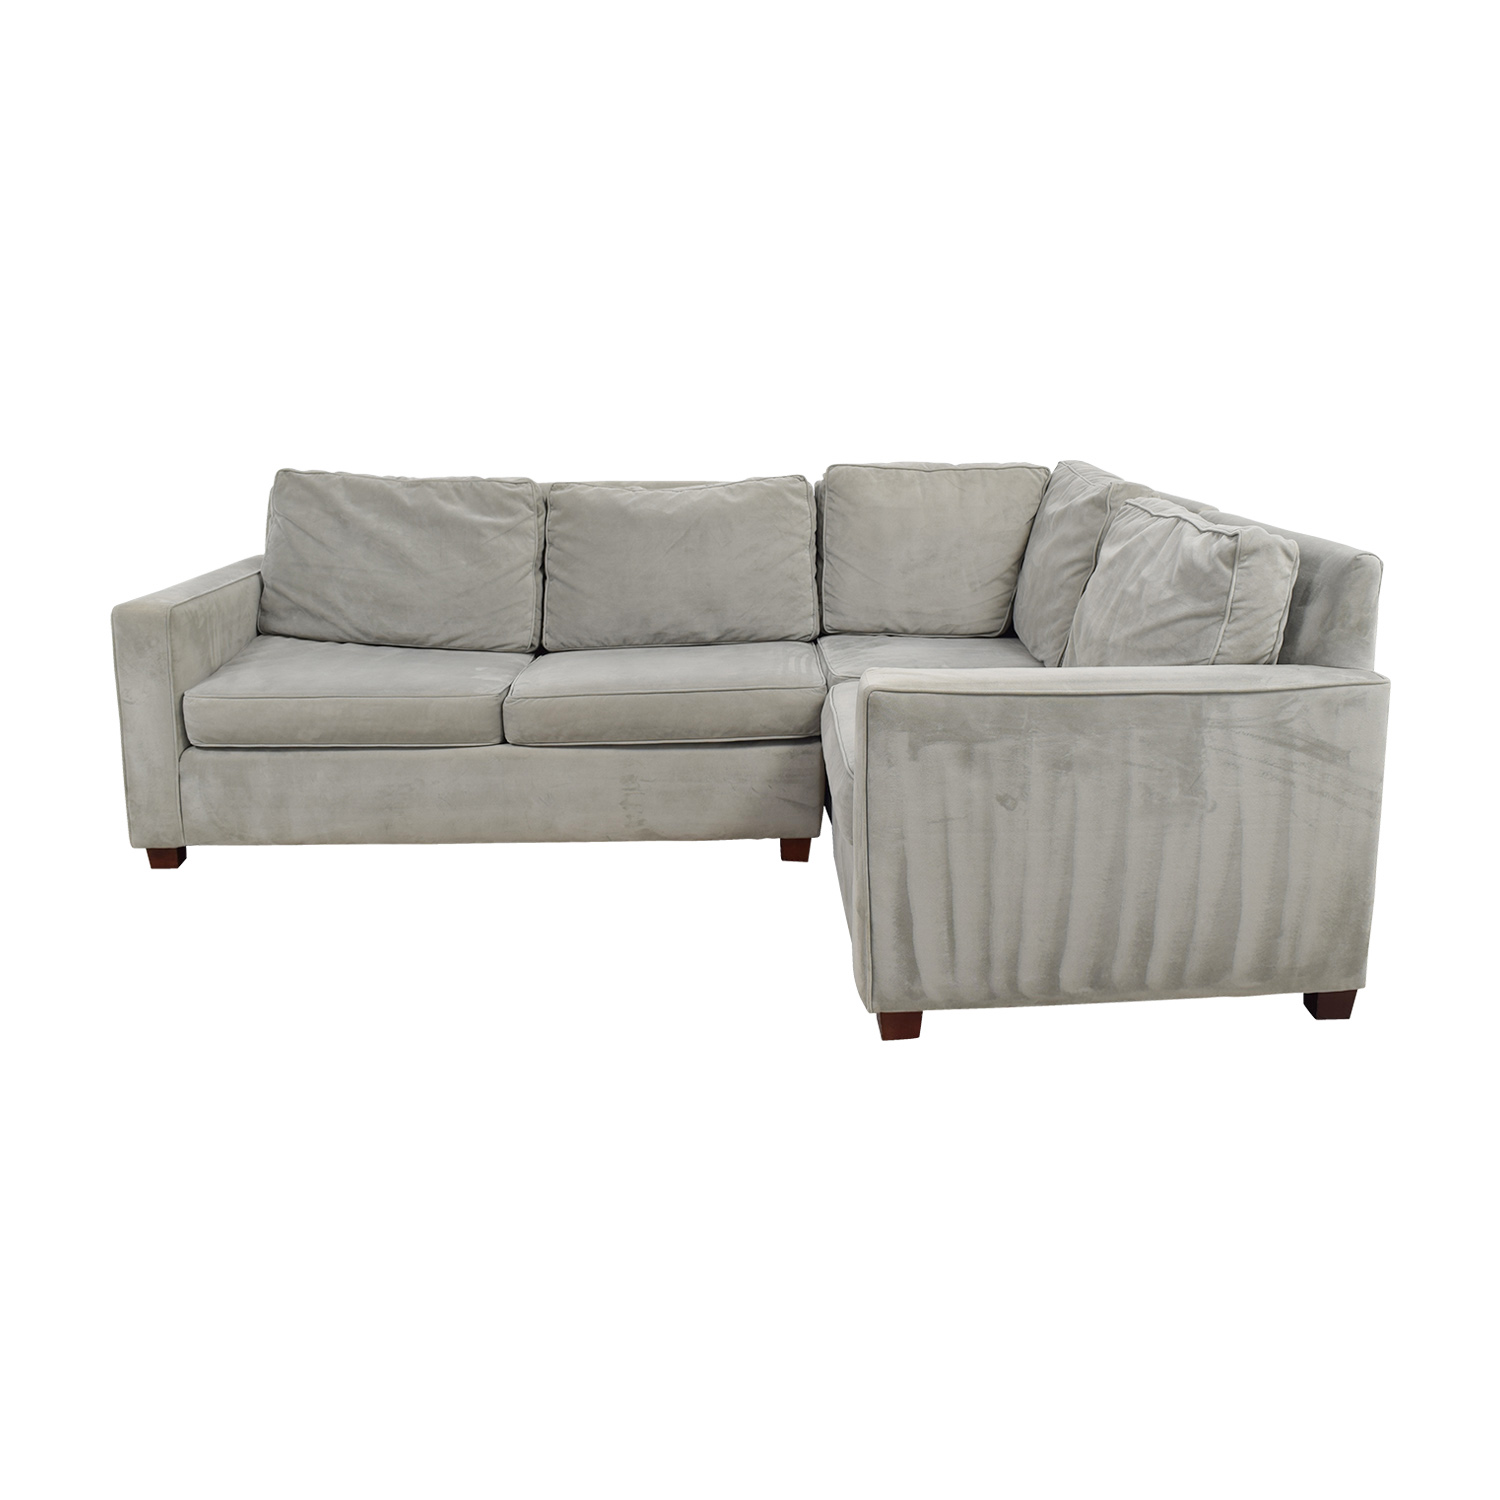 West Elm West Elm Henry Velvet Stone Sectional price